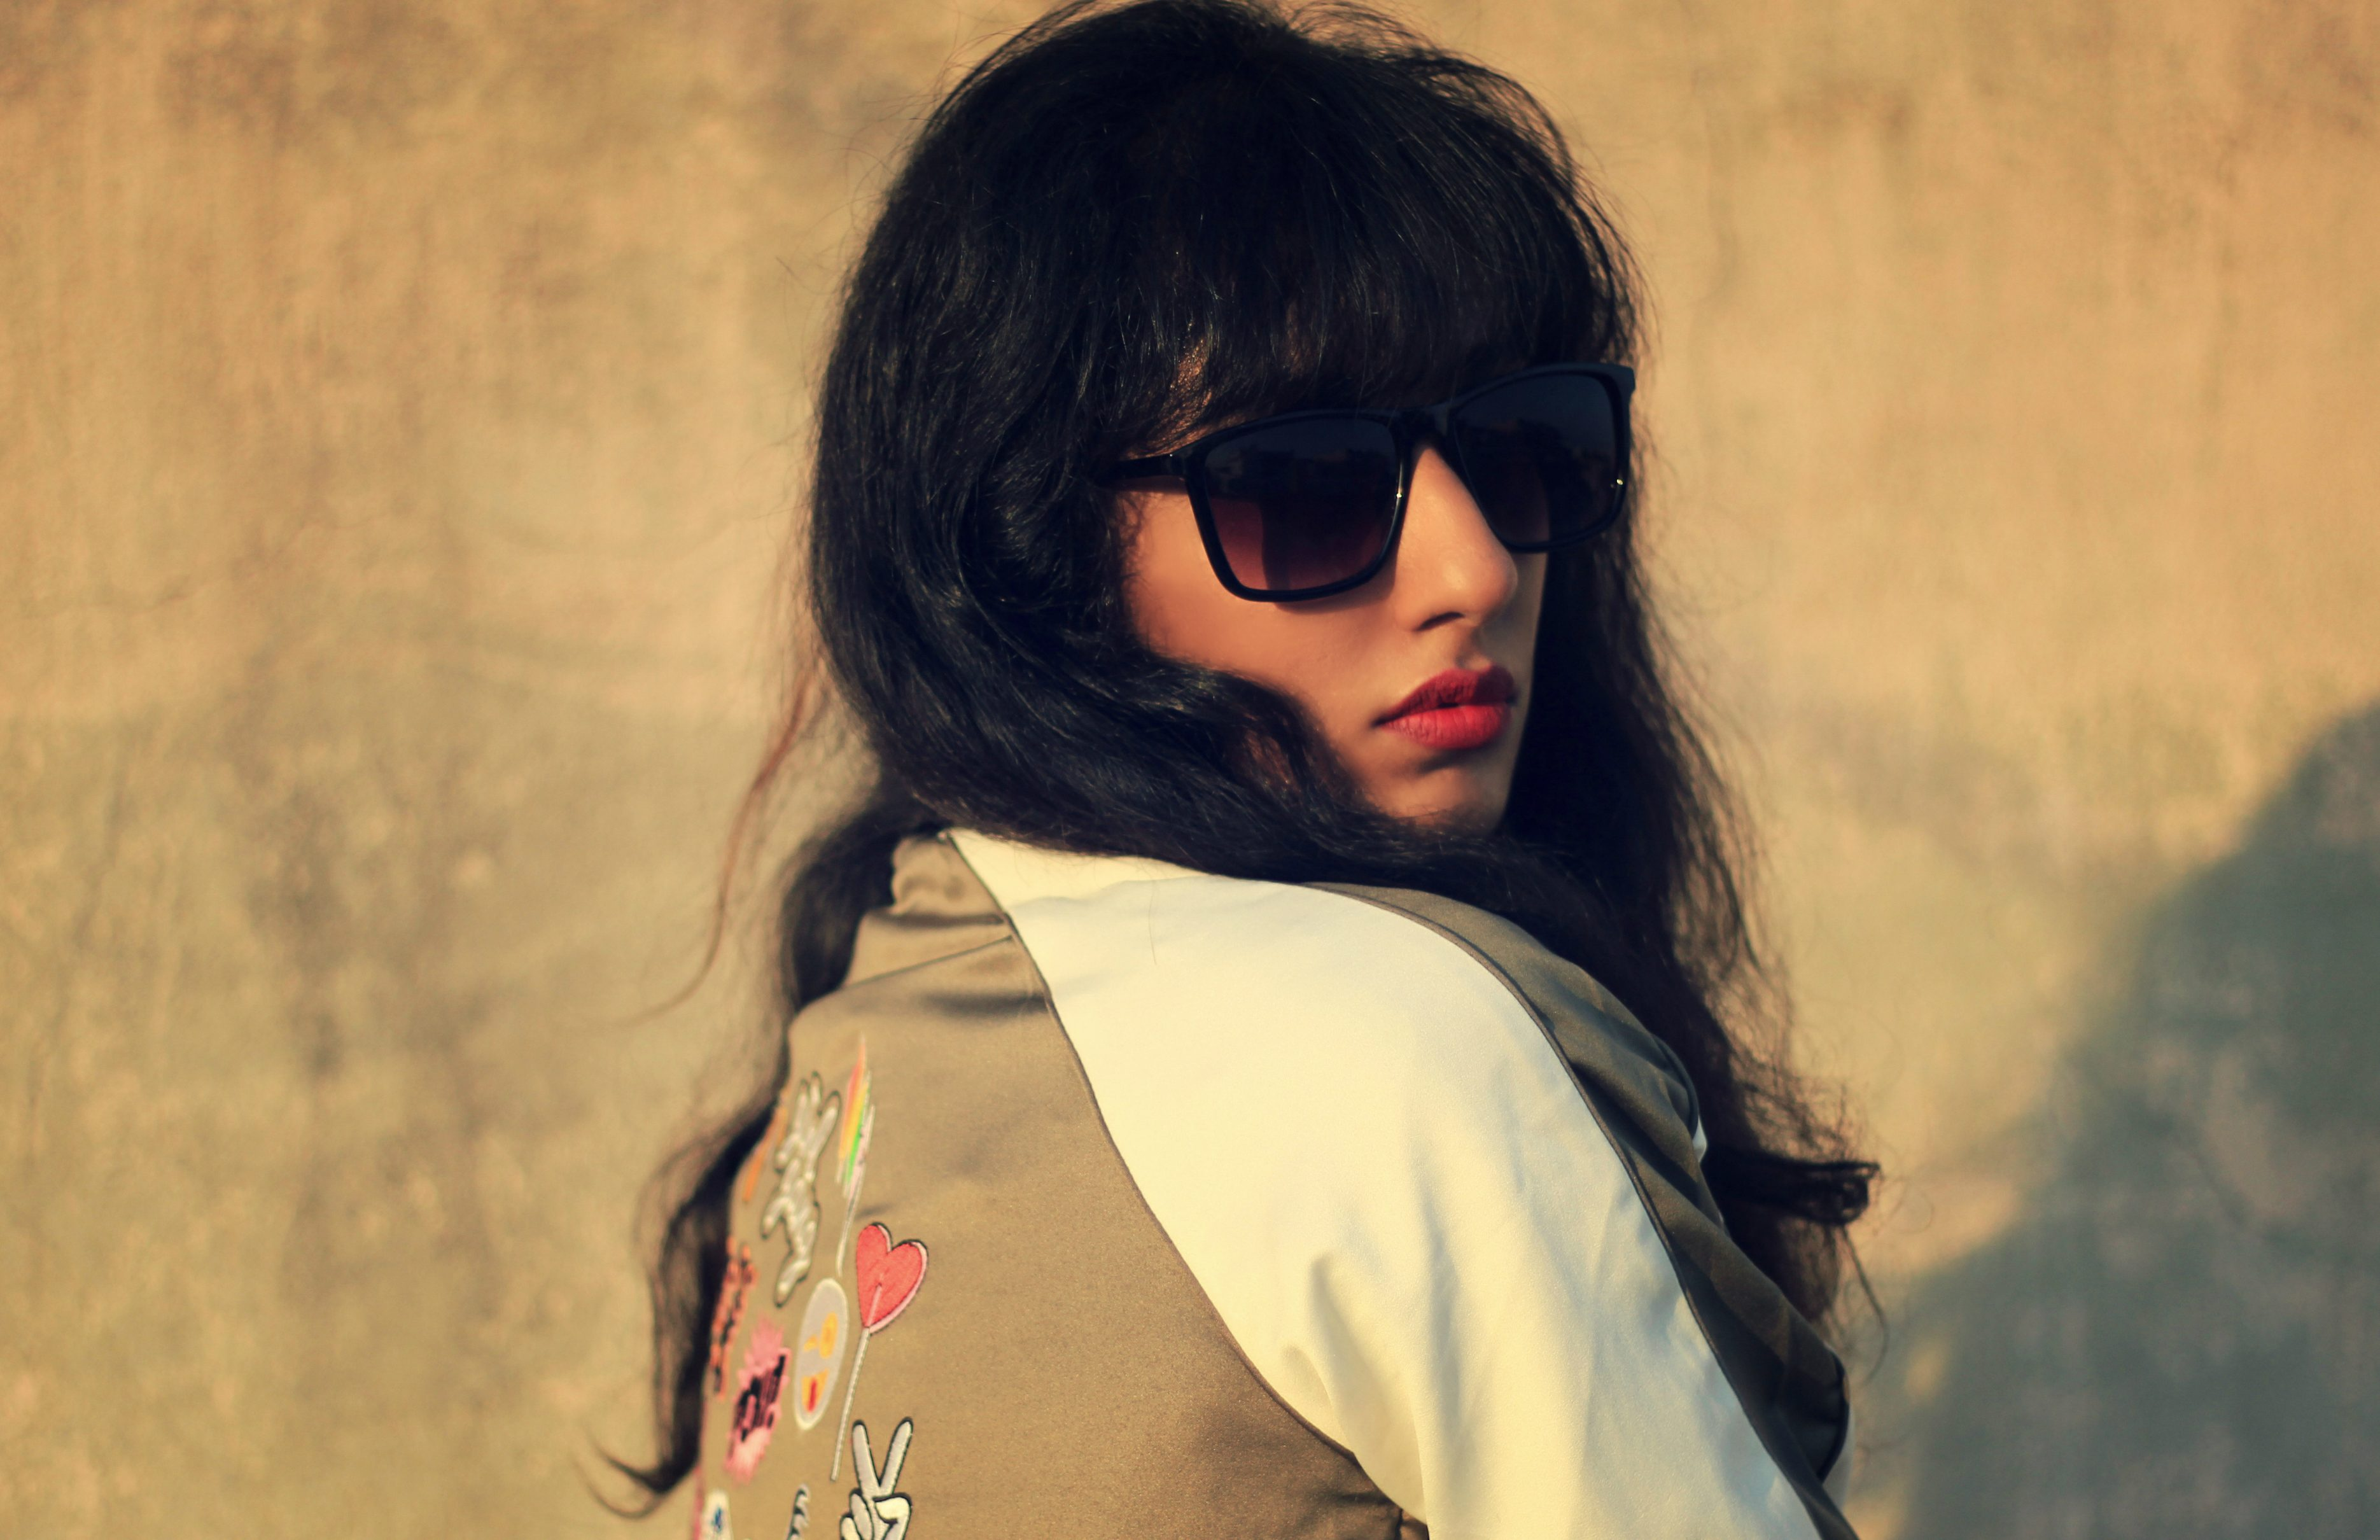 Lookbook ; Conceptual ; fashion photography ; Max Fashion ; Bomber Jacket ; vintage ; pop of colors ; quirky; red lips ; messy hair ; strong ; winter fashion ; winter outfit ; street style ; street fashion ; Dark ; Naznin ; hyderabad fashion bloggers ; hyderabad bloggers ; hyderabad fashion blogger ; I Dress for the Applause ;